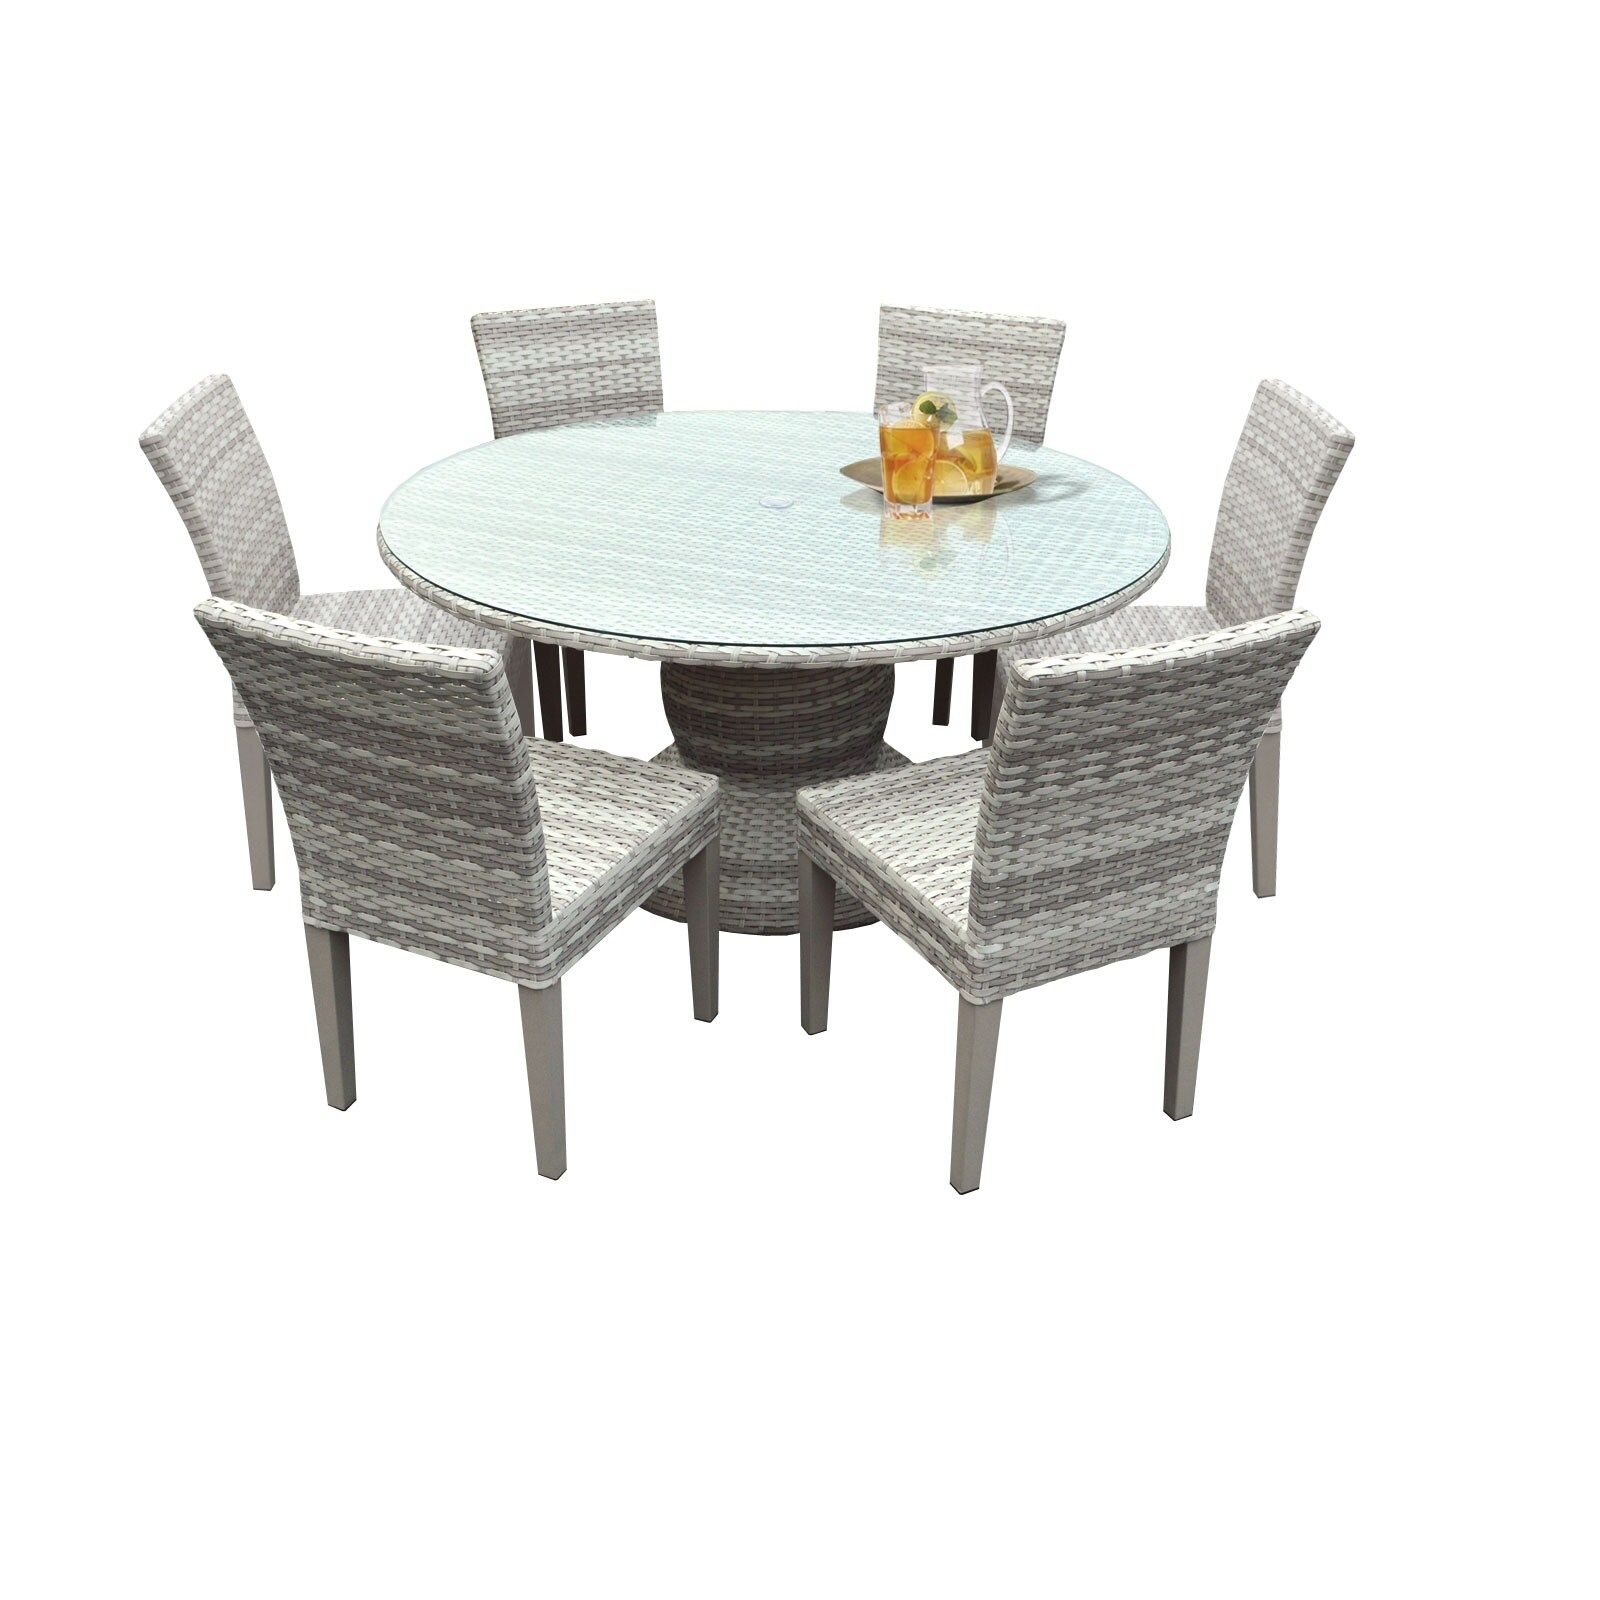 Catamaran Outdoor Patio Round Wicker Dining Table with Gl...